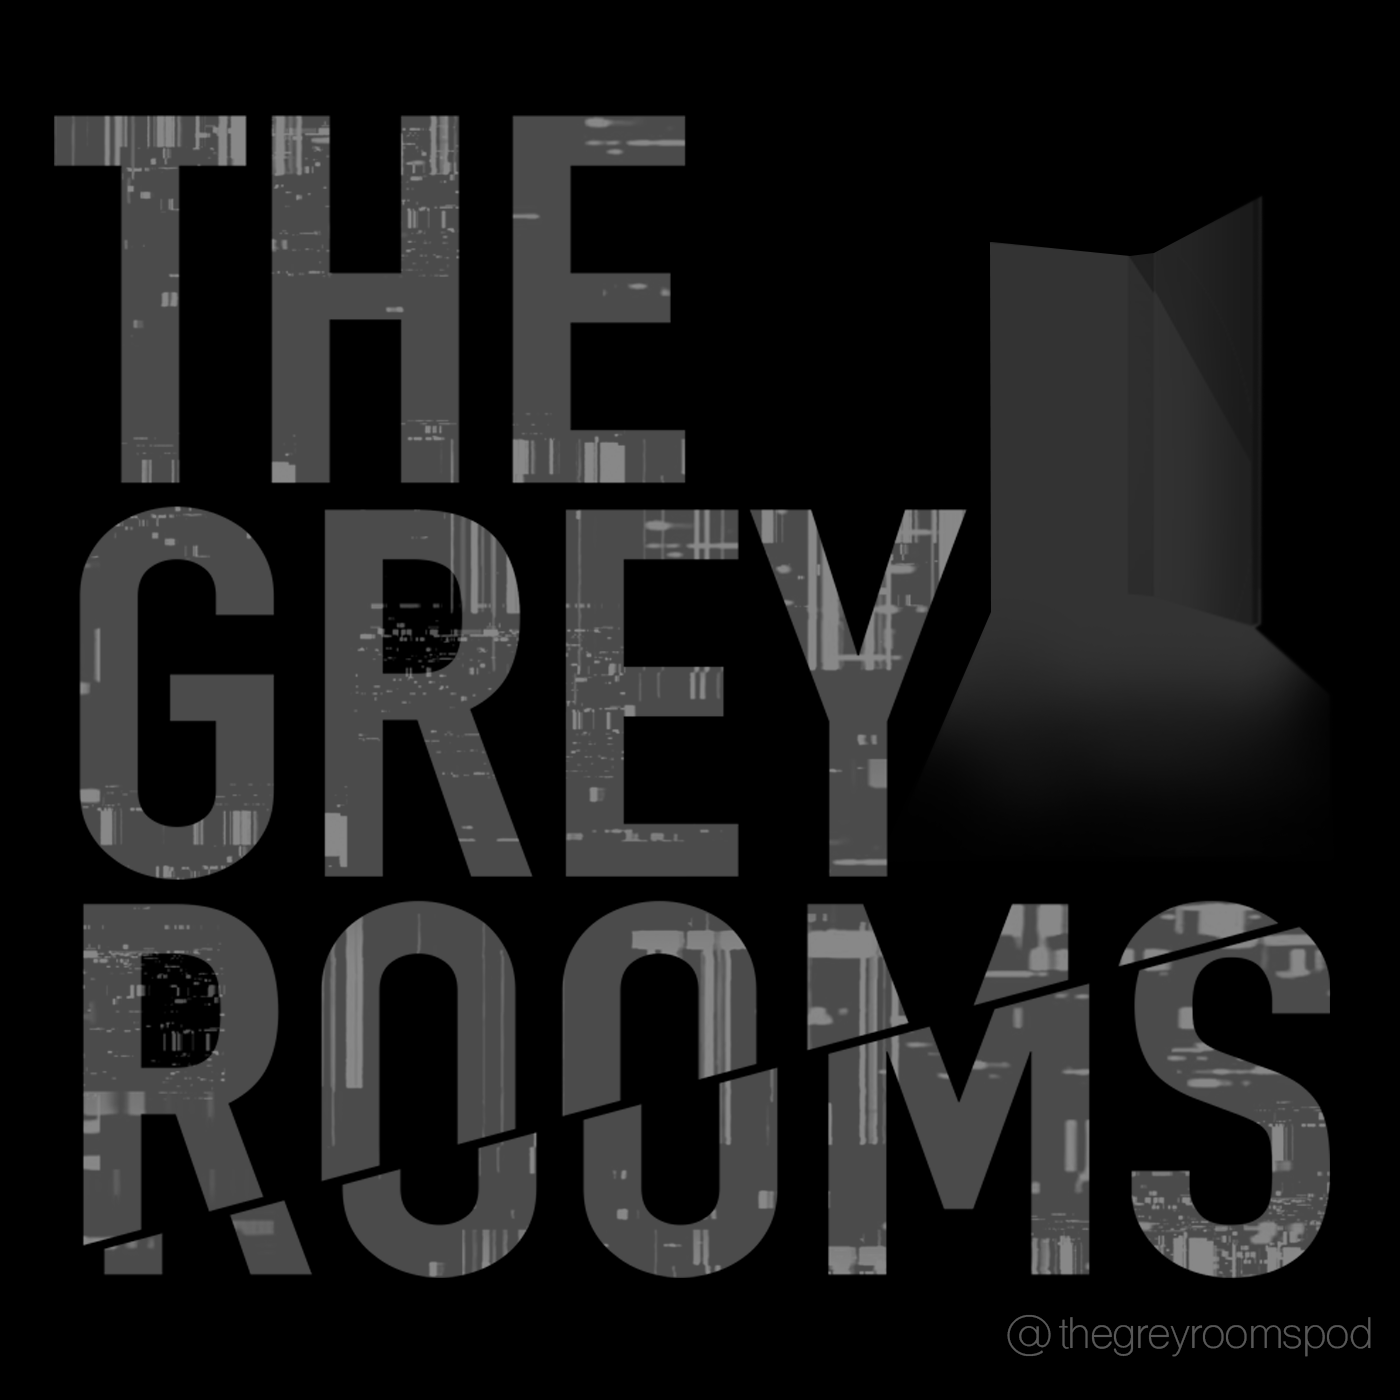 The Grey Rooms show art